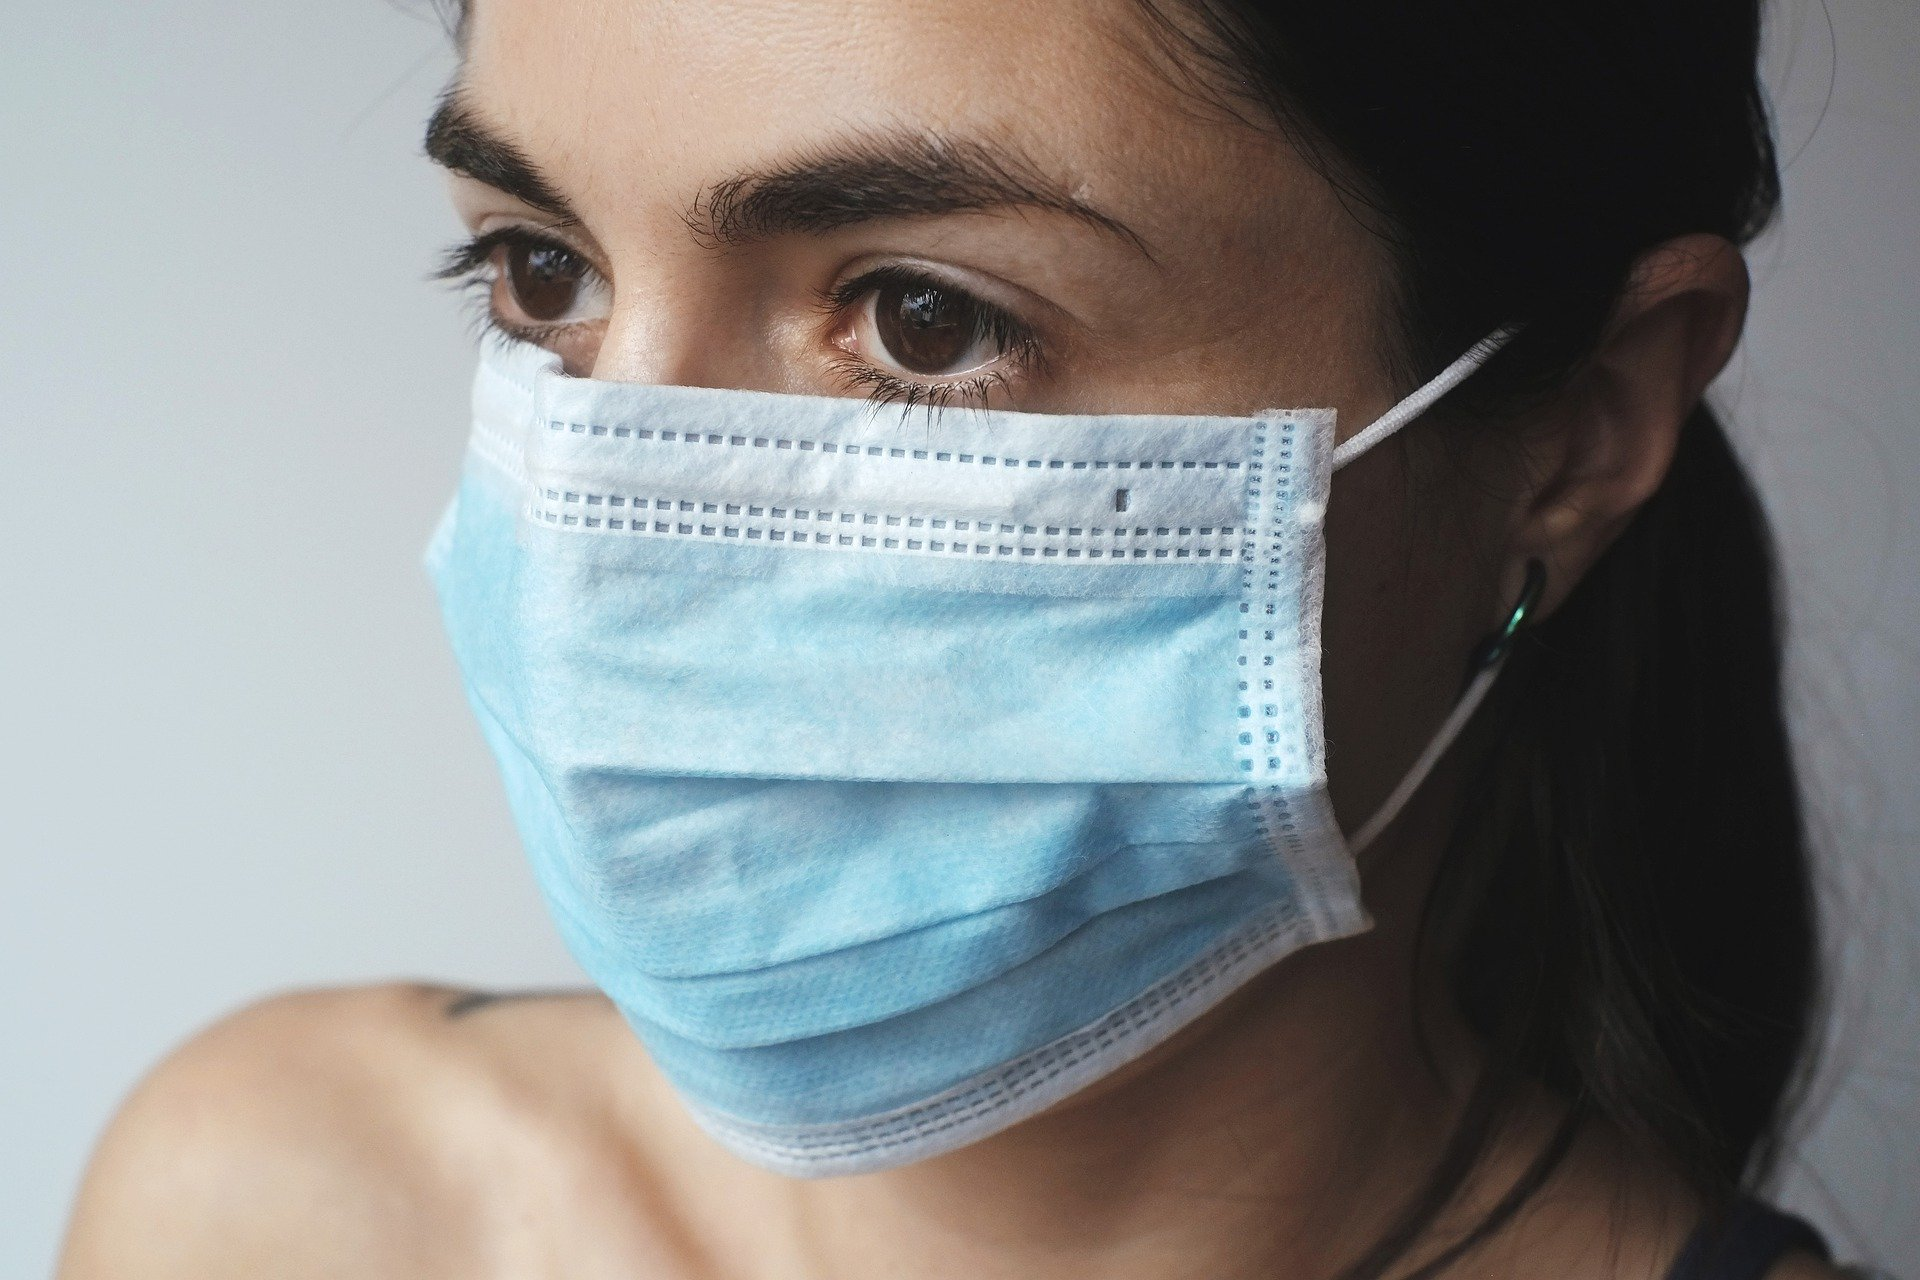 A stock image of a woman wearing a medical face mask.